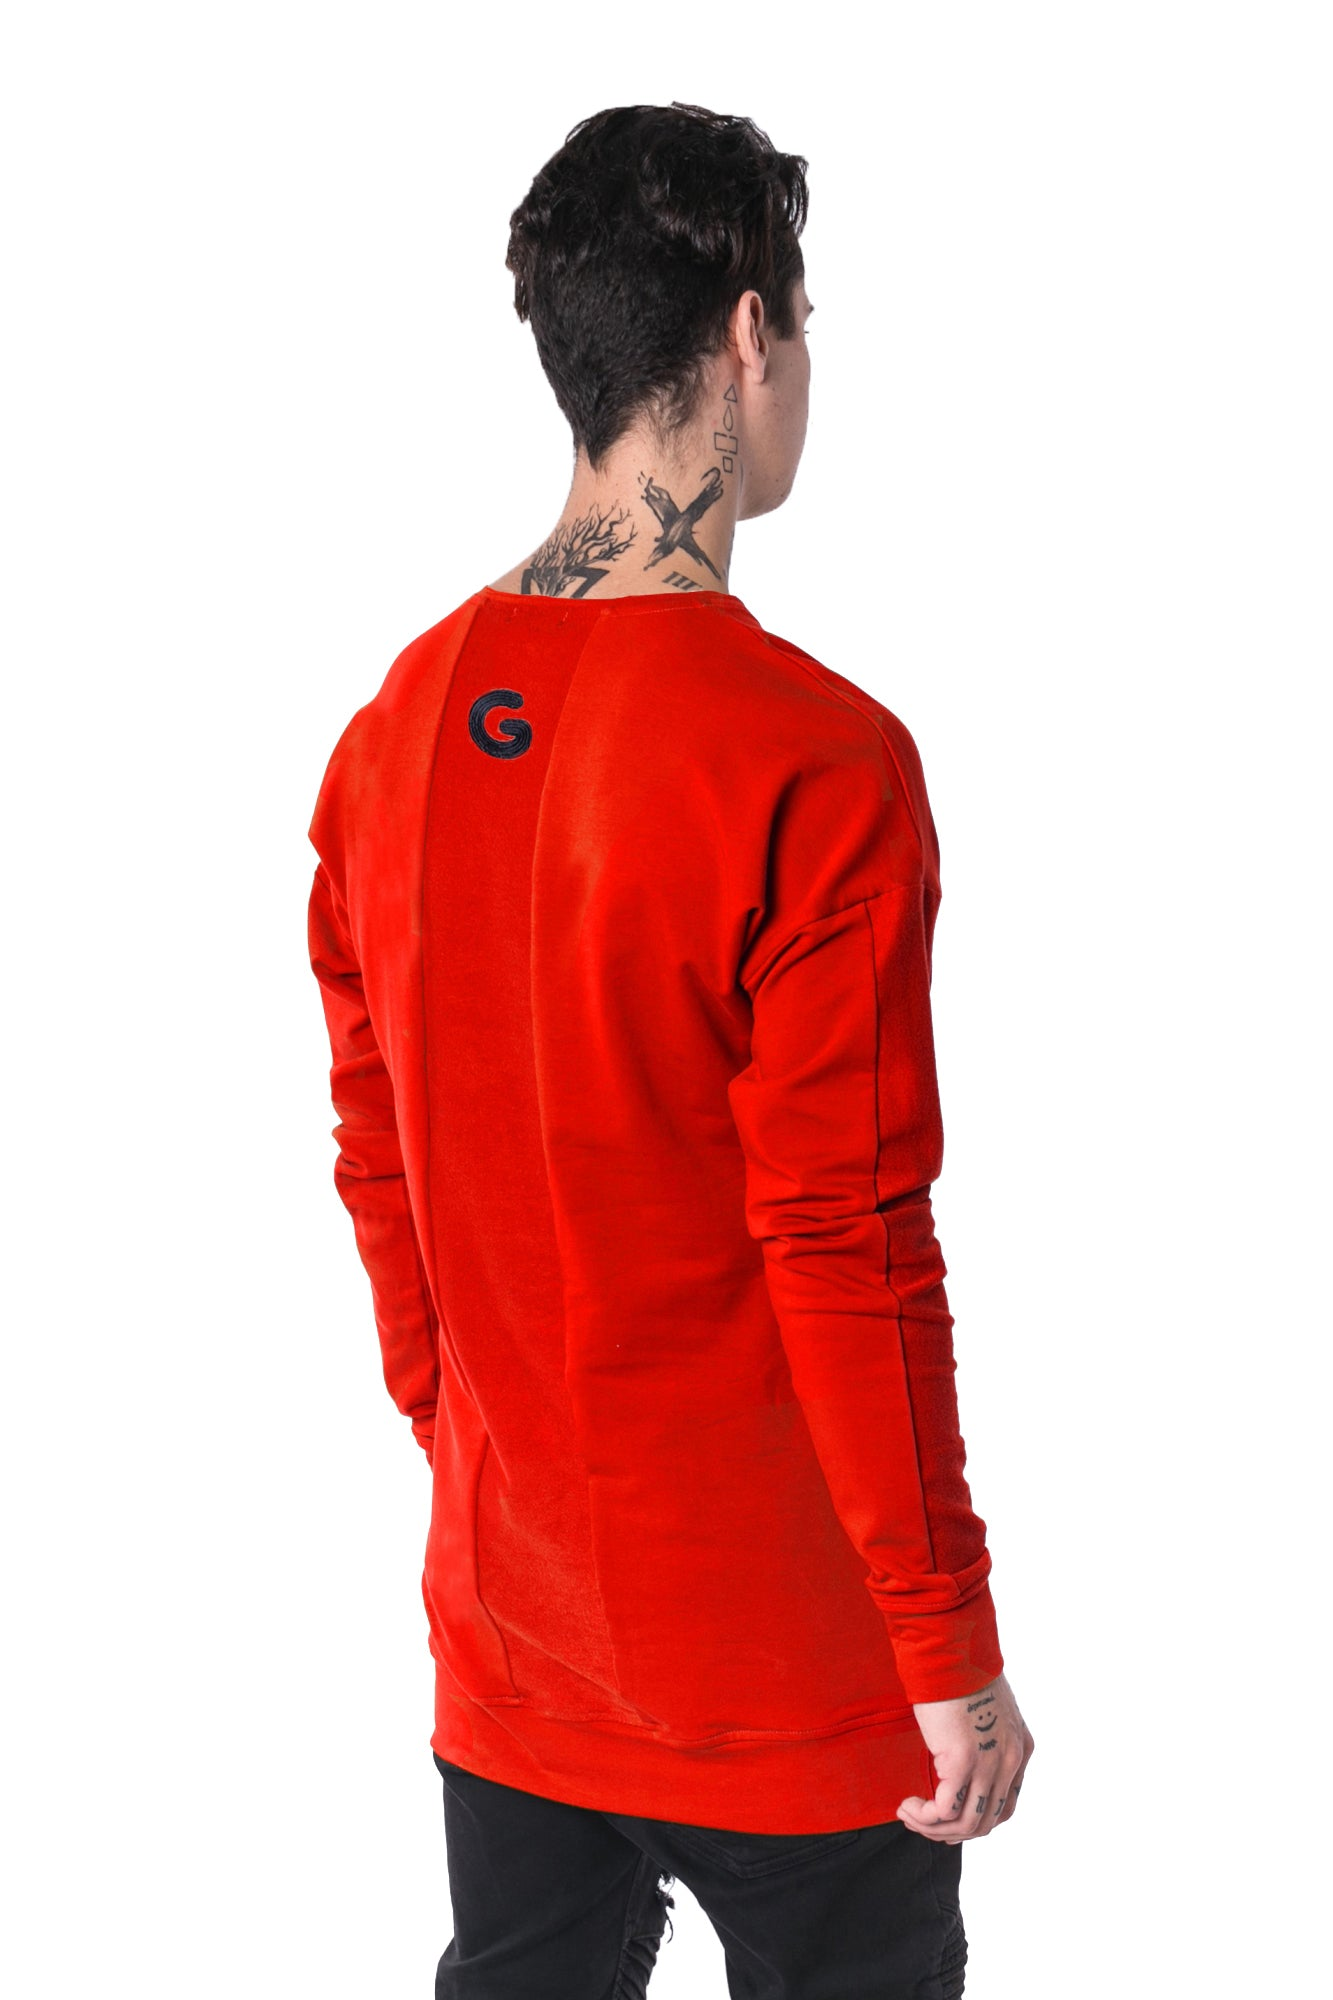 The Man Panelled Pullover Crewneck 17 // red